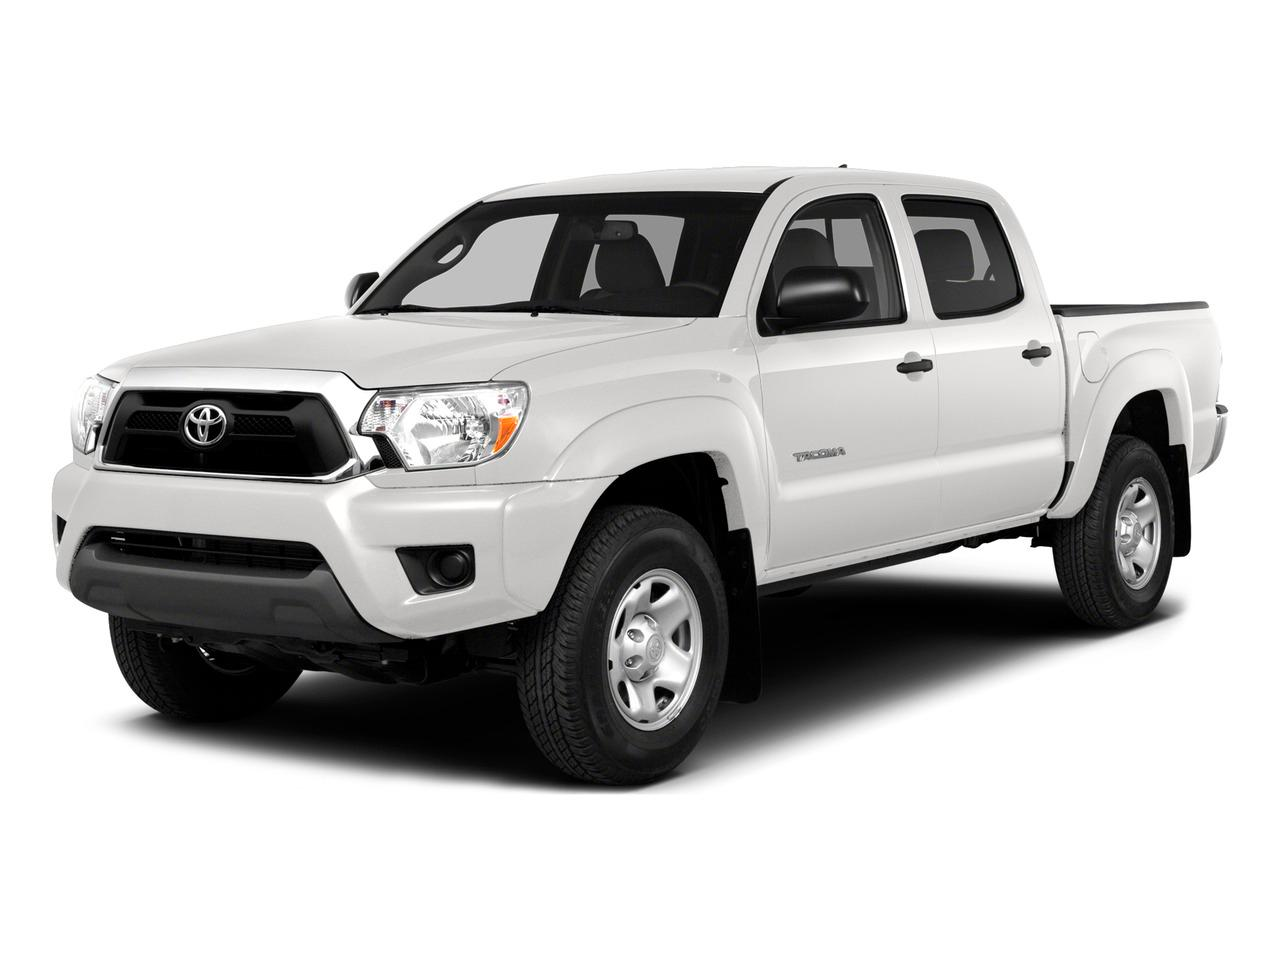 2015 Toyota Tacoma Vehicle Photo in Beaufort, SC 29906